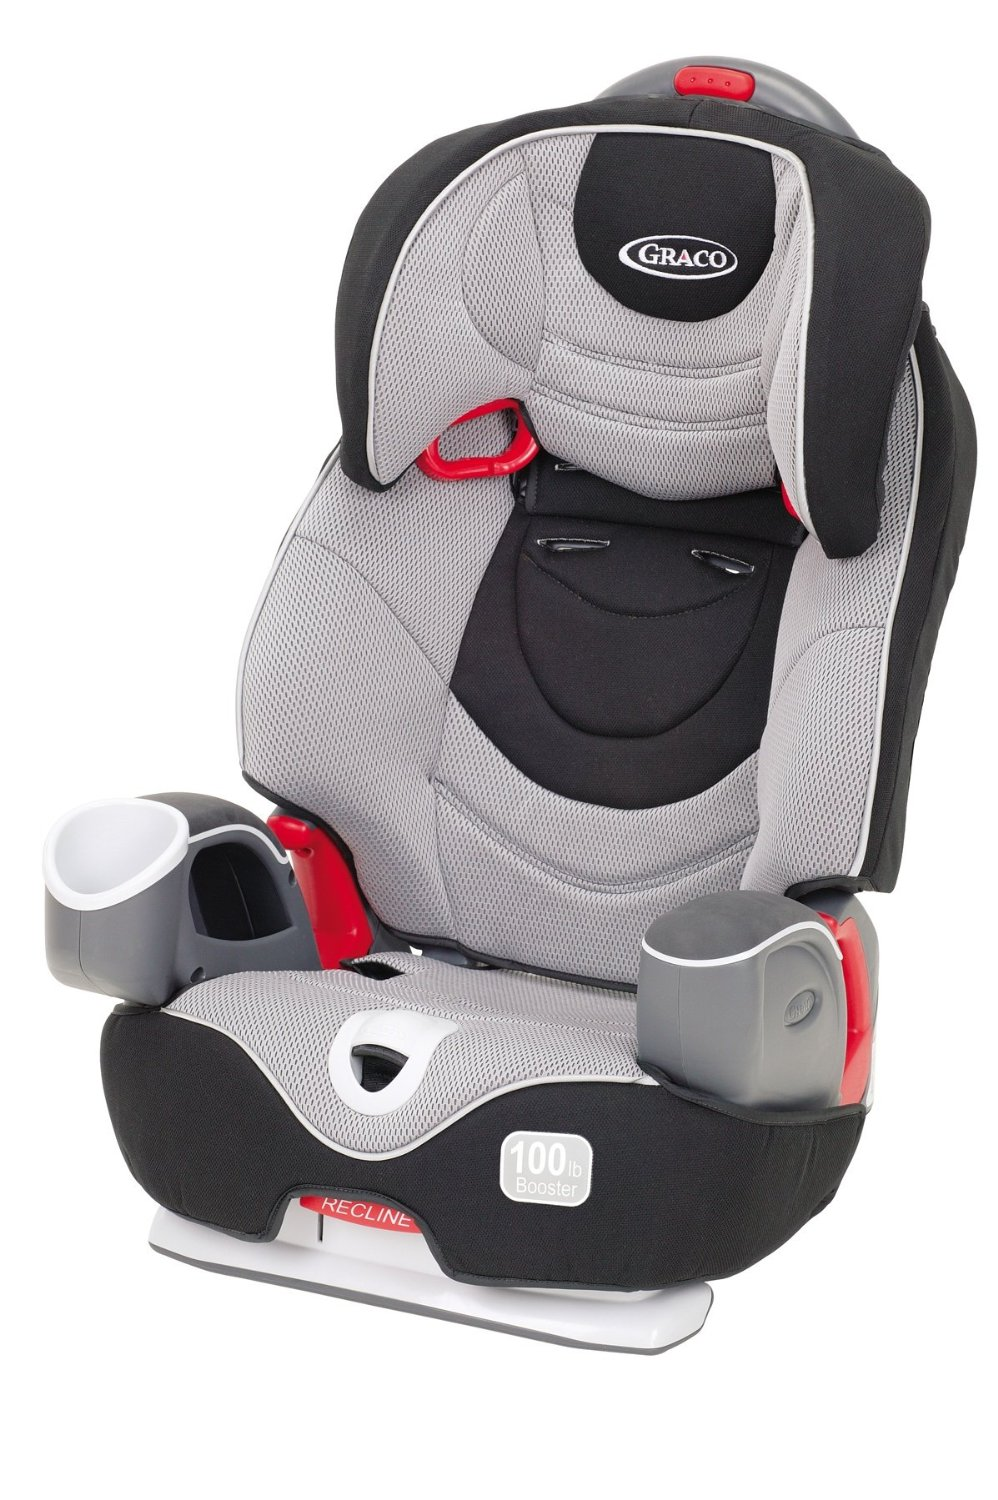 graco nautilus 3 in 1 car seat full review comparison 2016. Black Bedroom Furniture Sets. Home Design Ideas